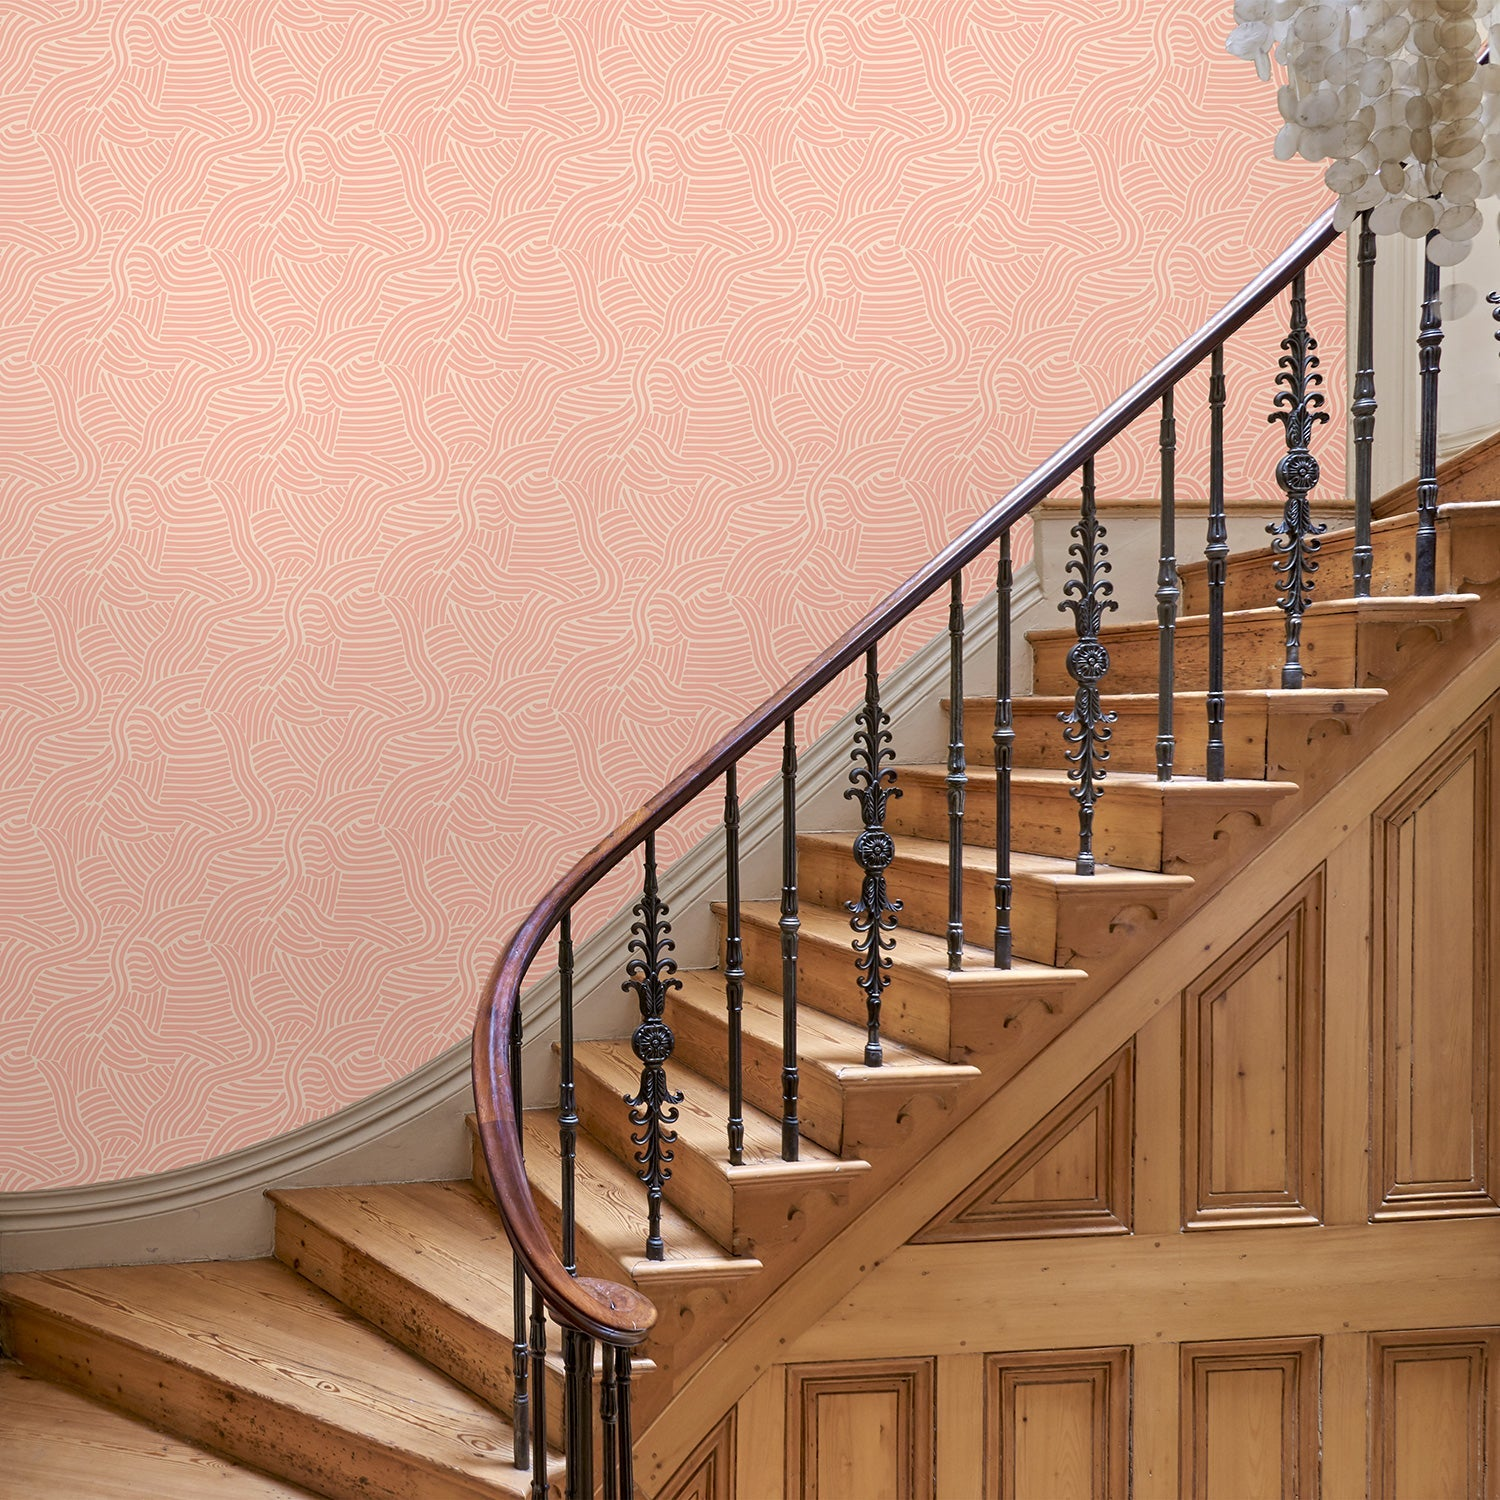 Hallway featuring a Luxury pink wallpaper with an abstract wave design